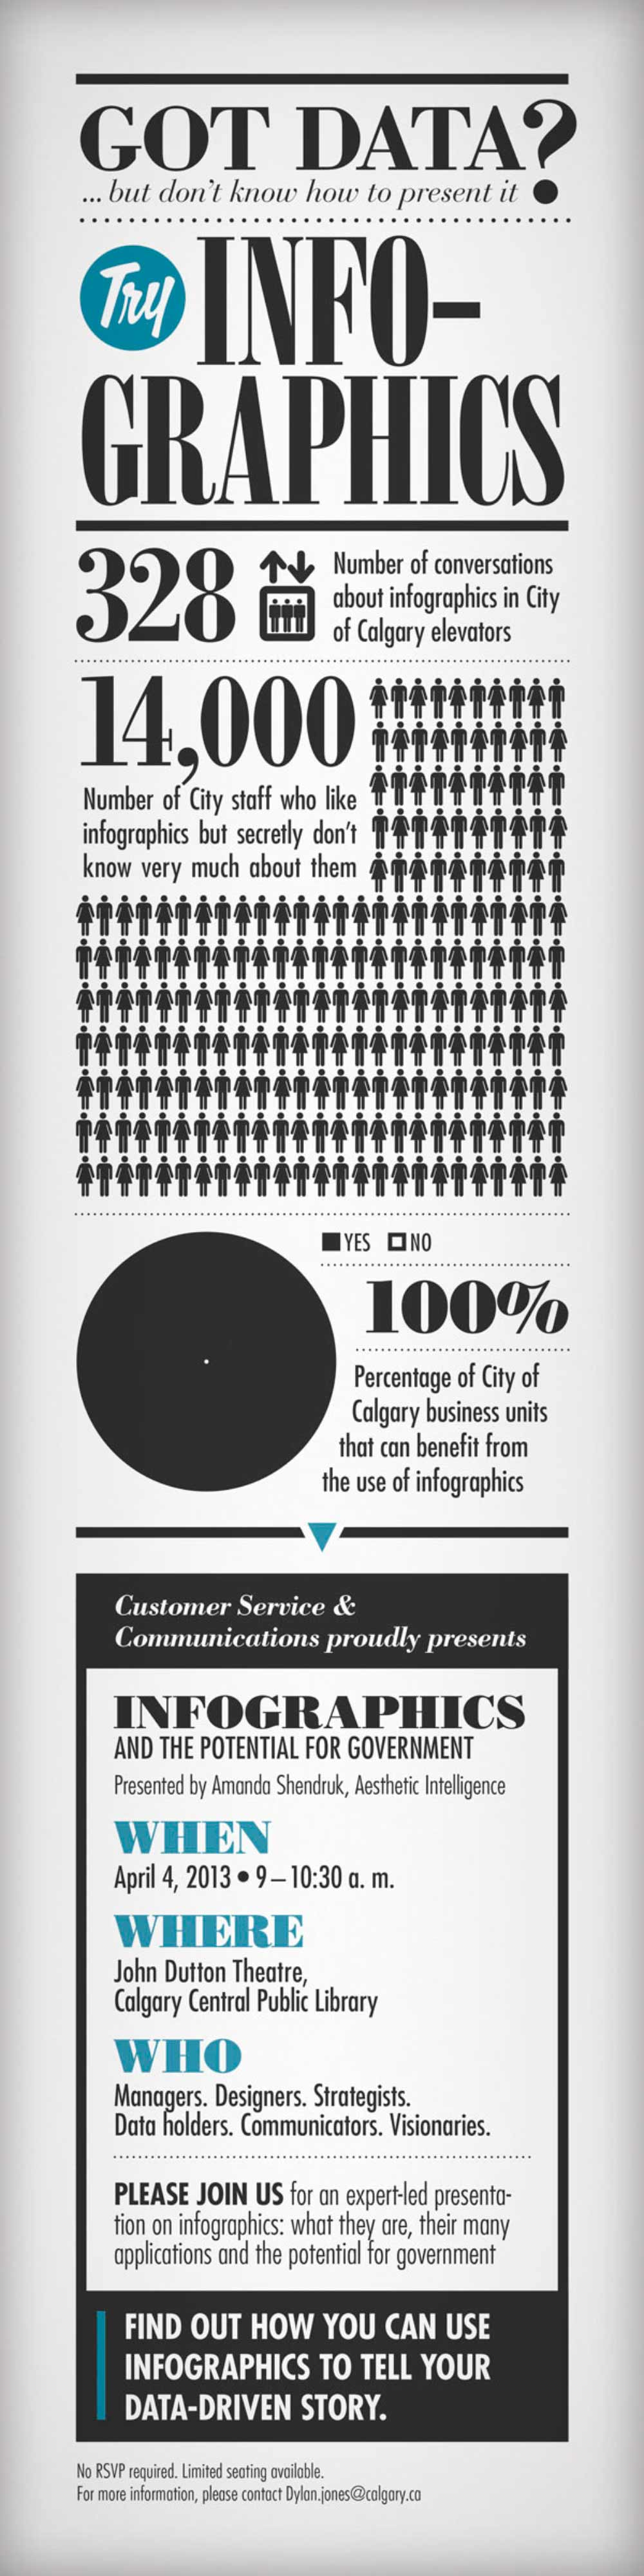 city-of-calgary-infographic-workshop